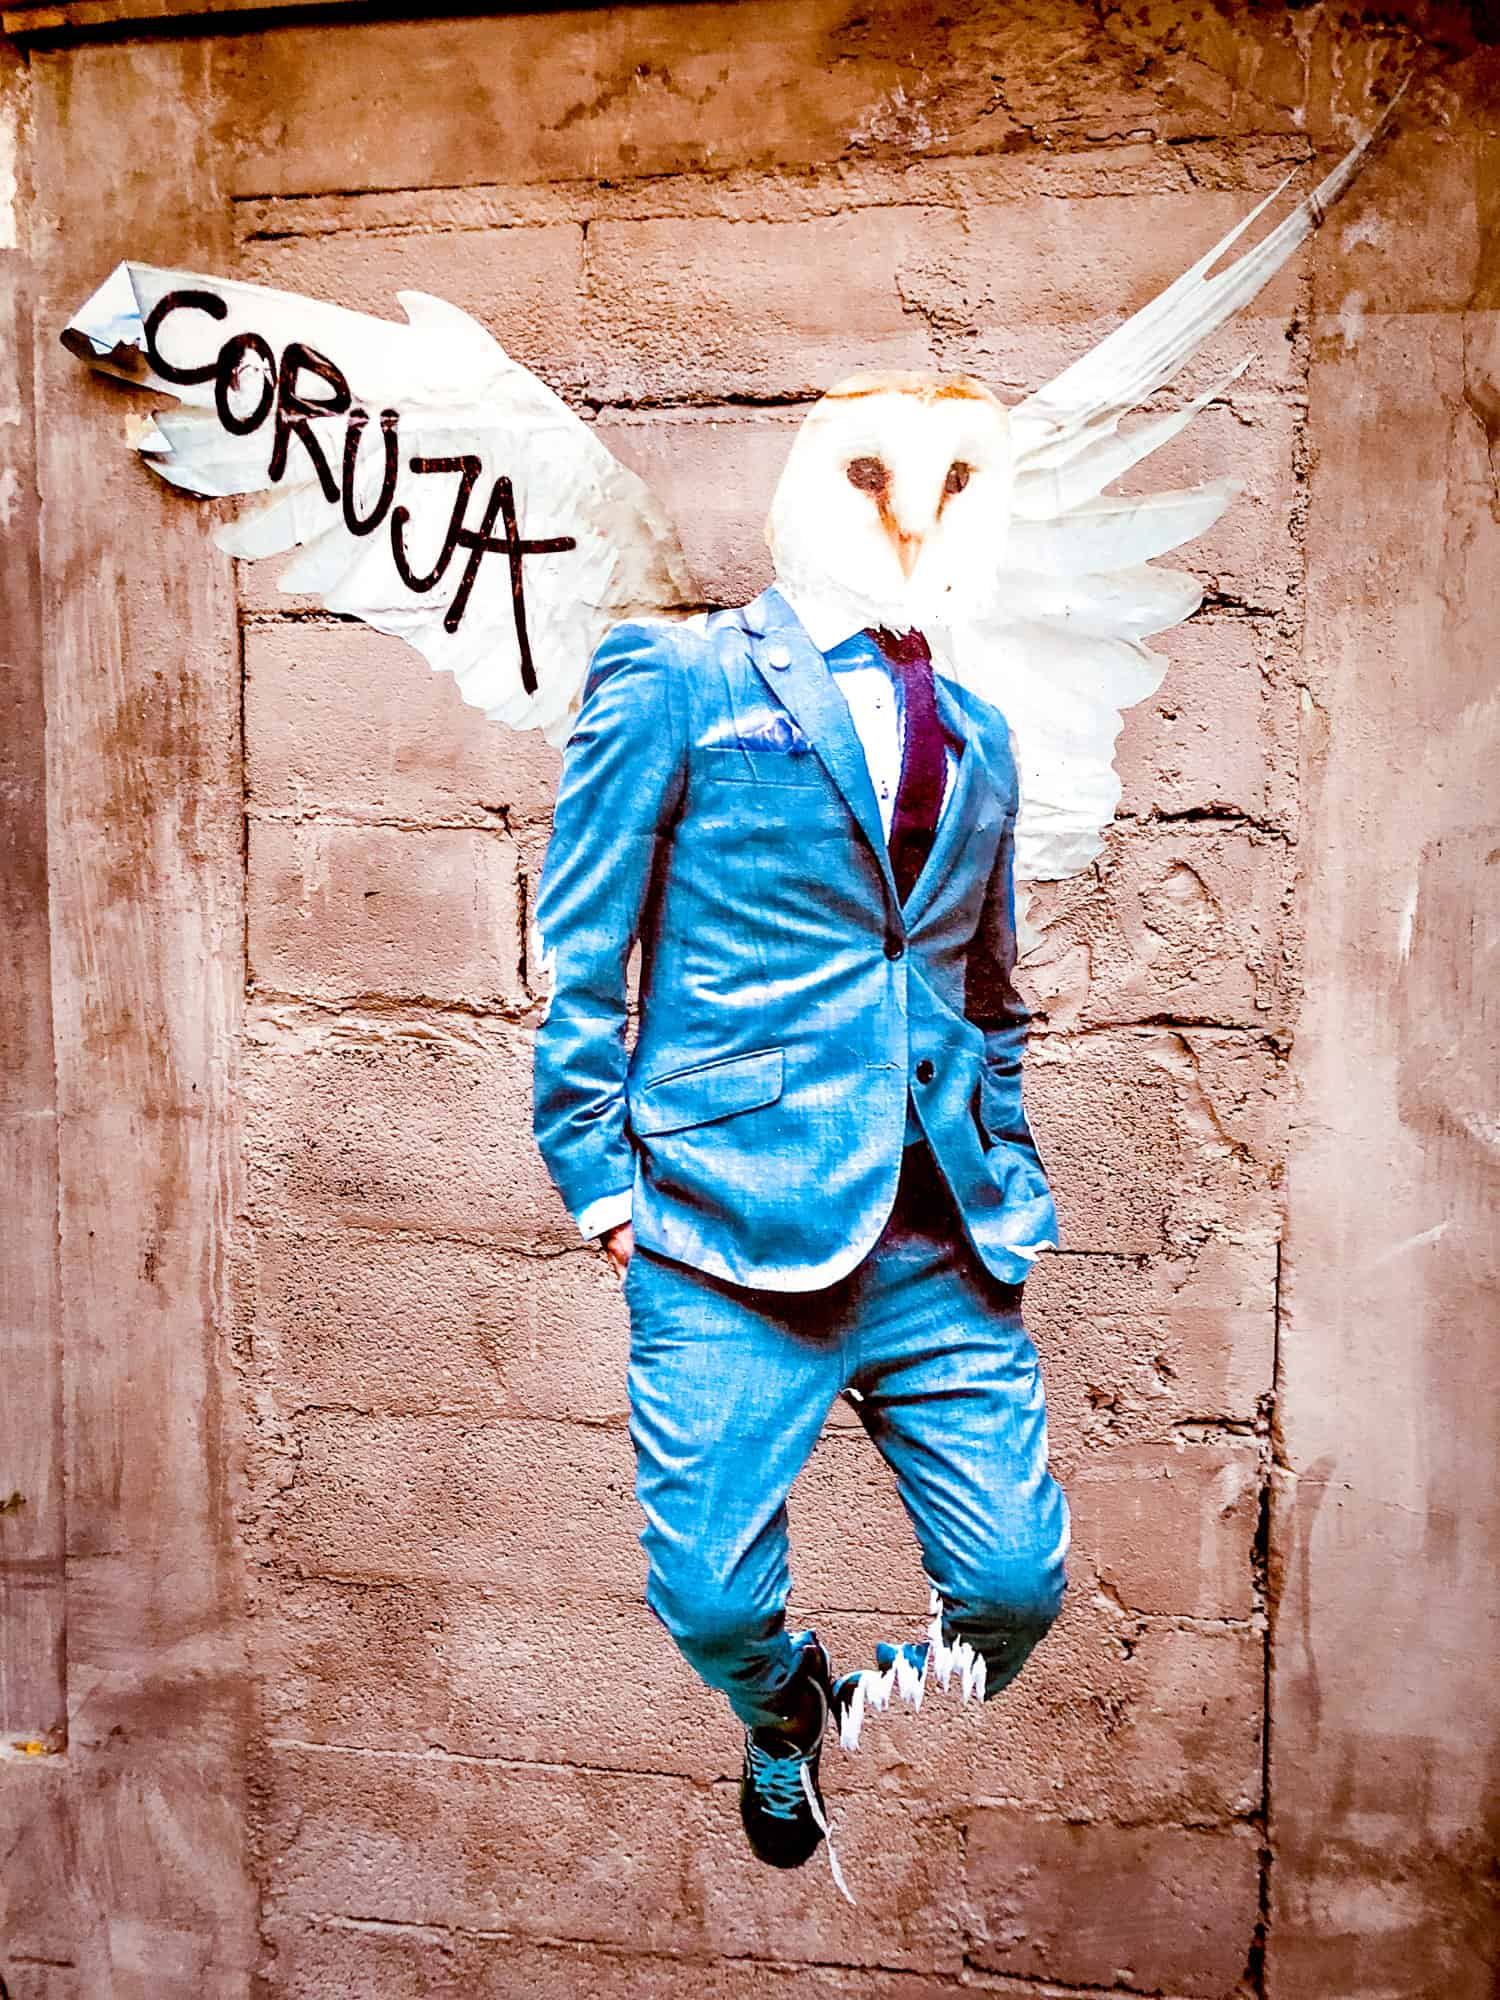 Street Art Owl Man in Suit